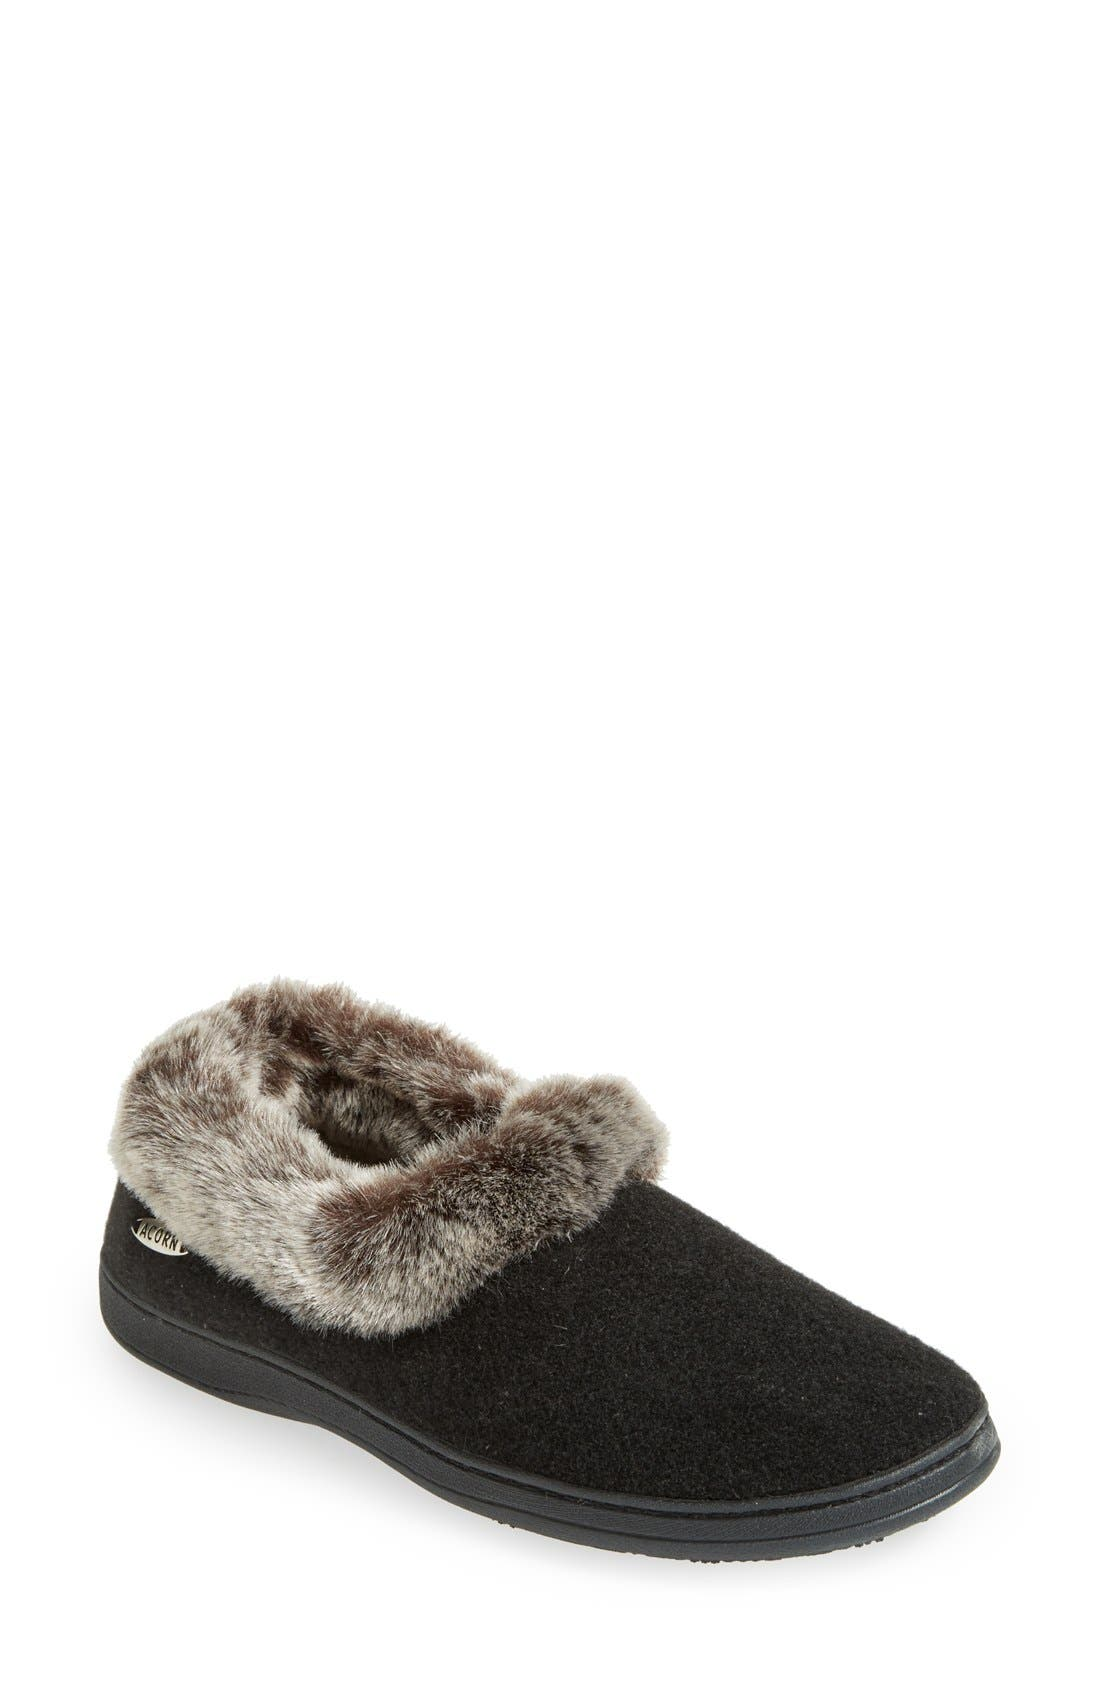 'Chinchilla Collar' Faux Fur Slipper,                             Main thumbnail 1, color,                             Black